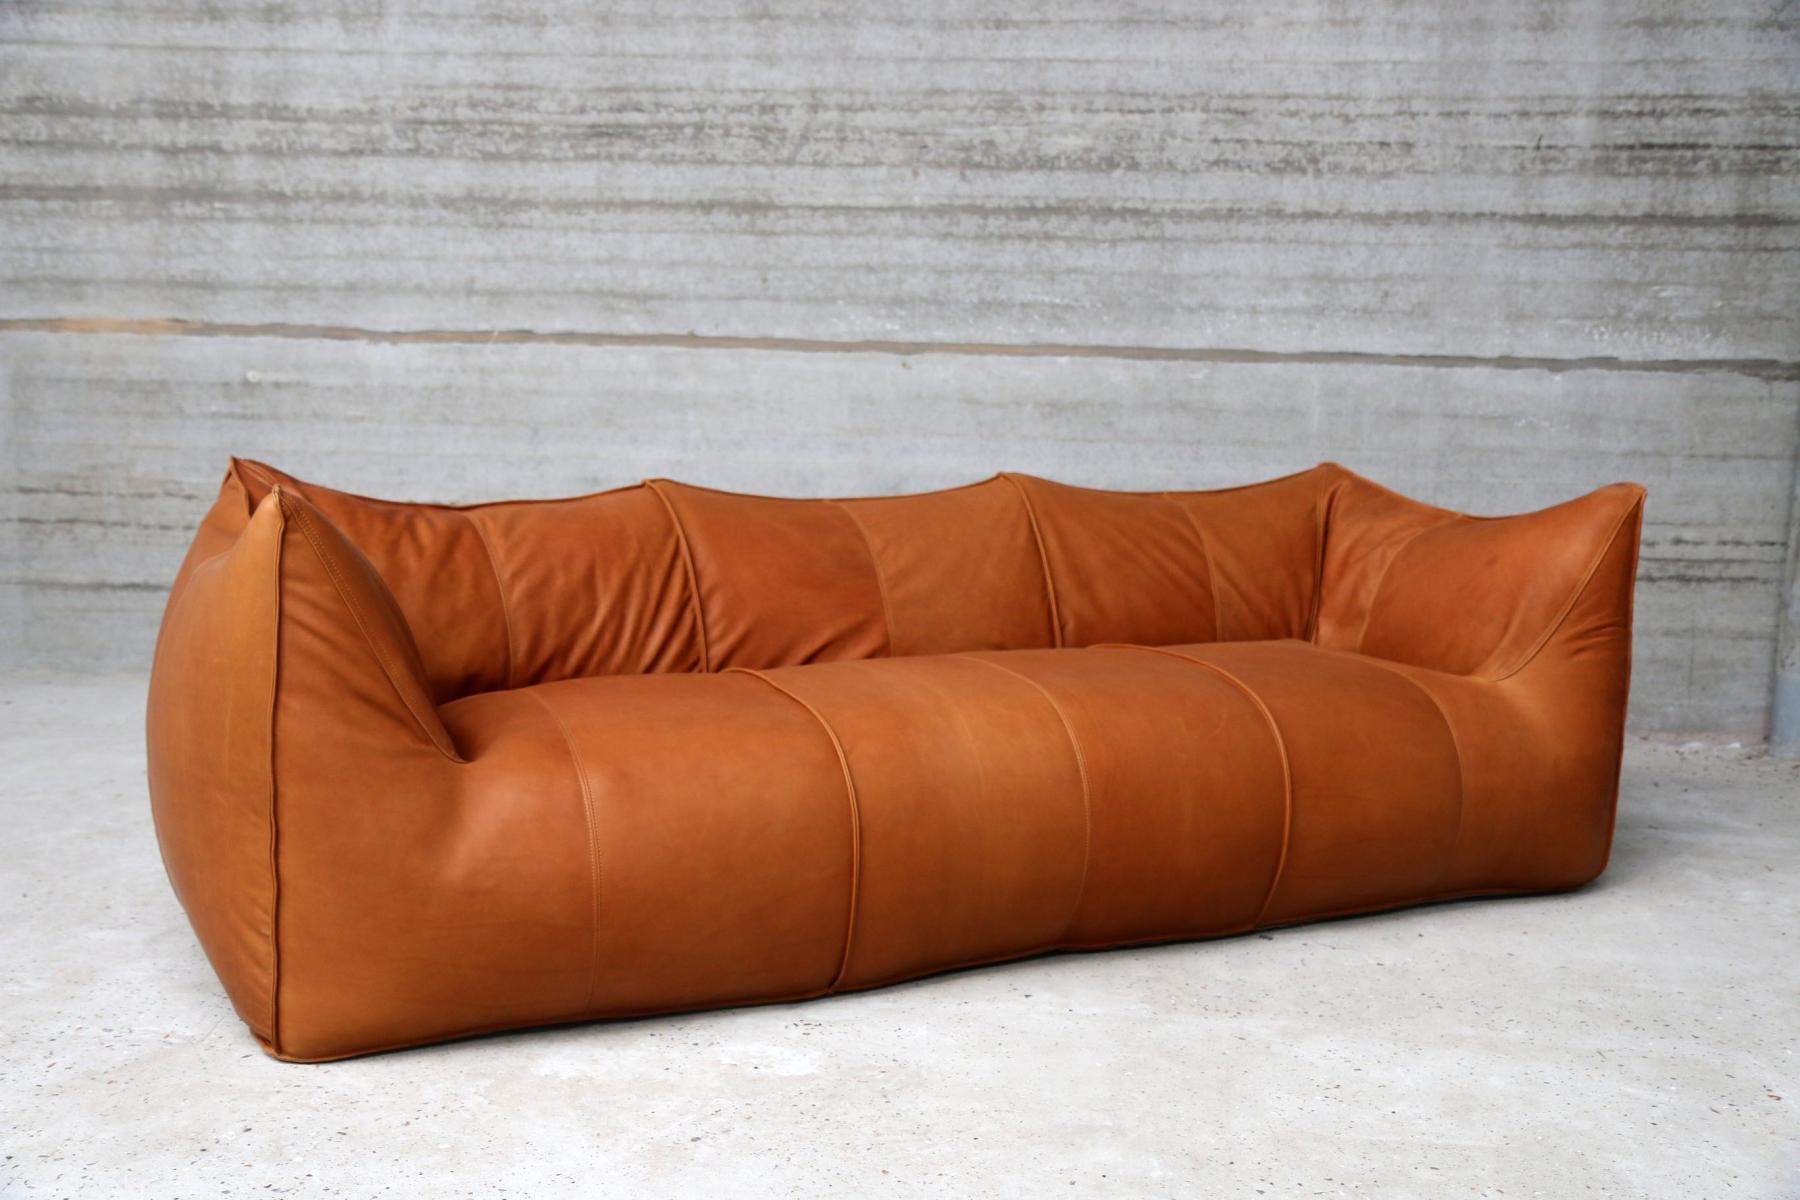 Vintage Bambole Three-Seater Sofamario Bellini For B&b Italia within Bellini Sofas